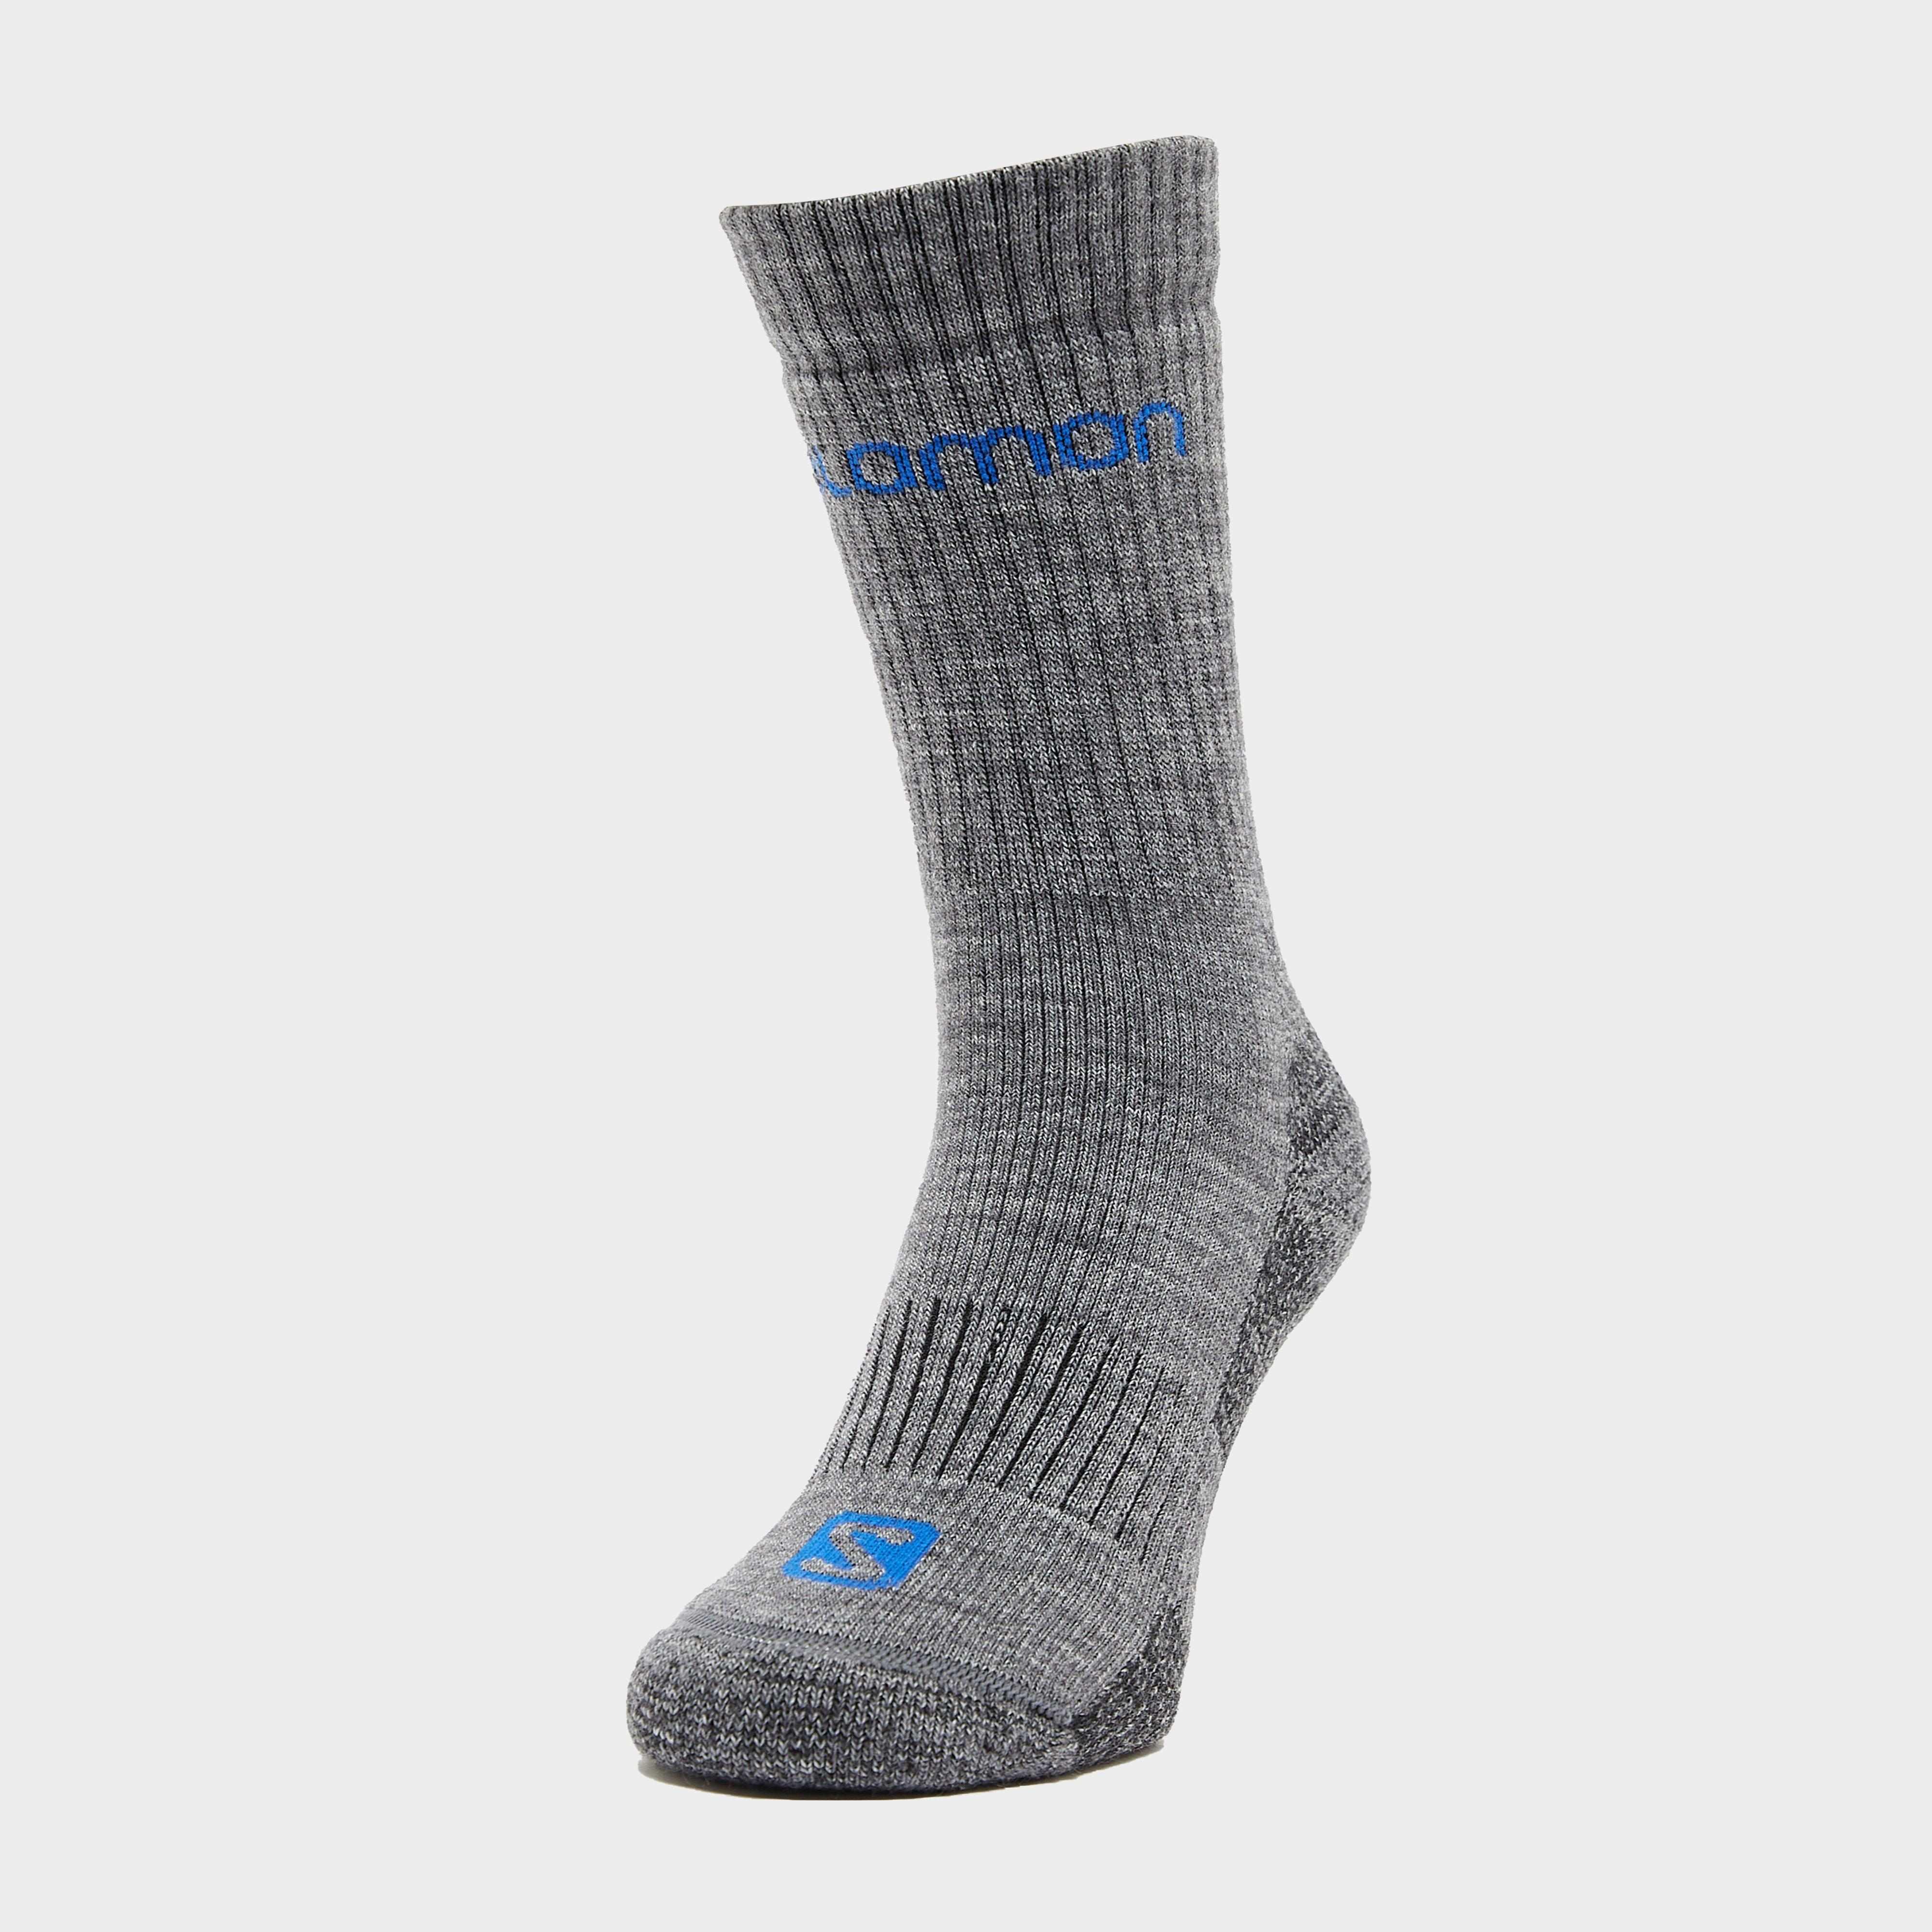 Salomon Socks Salomon Socks Mens Merino Socks 2 Pack, Grey